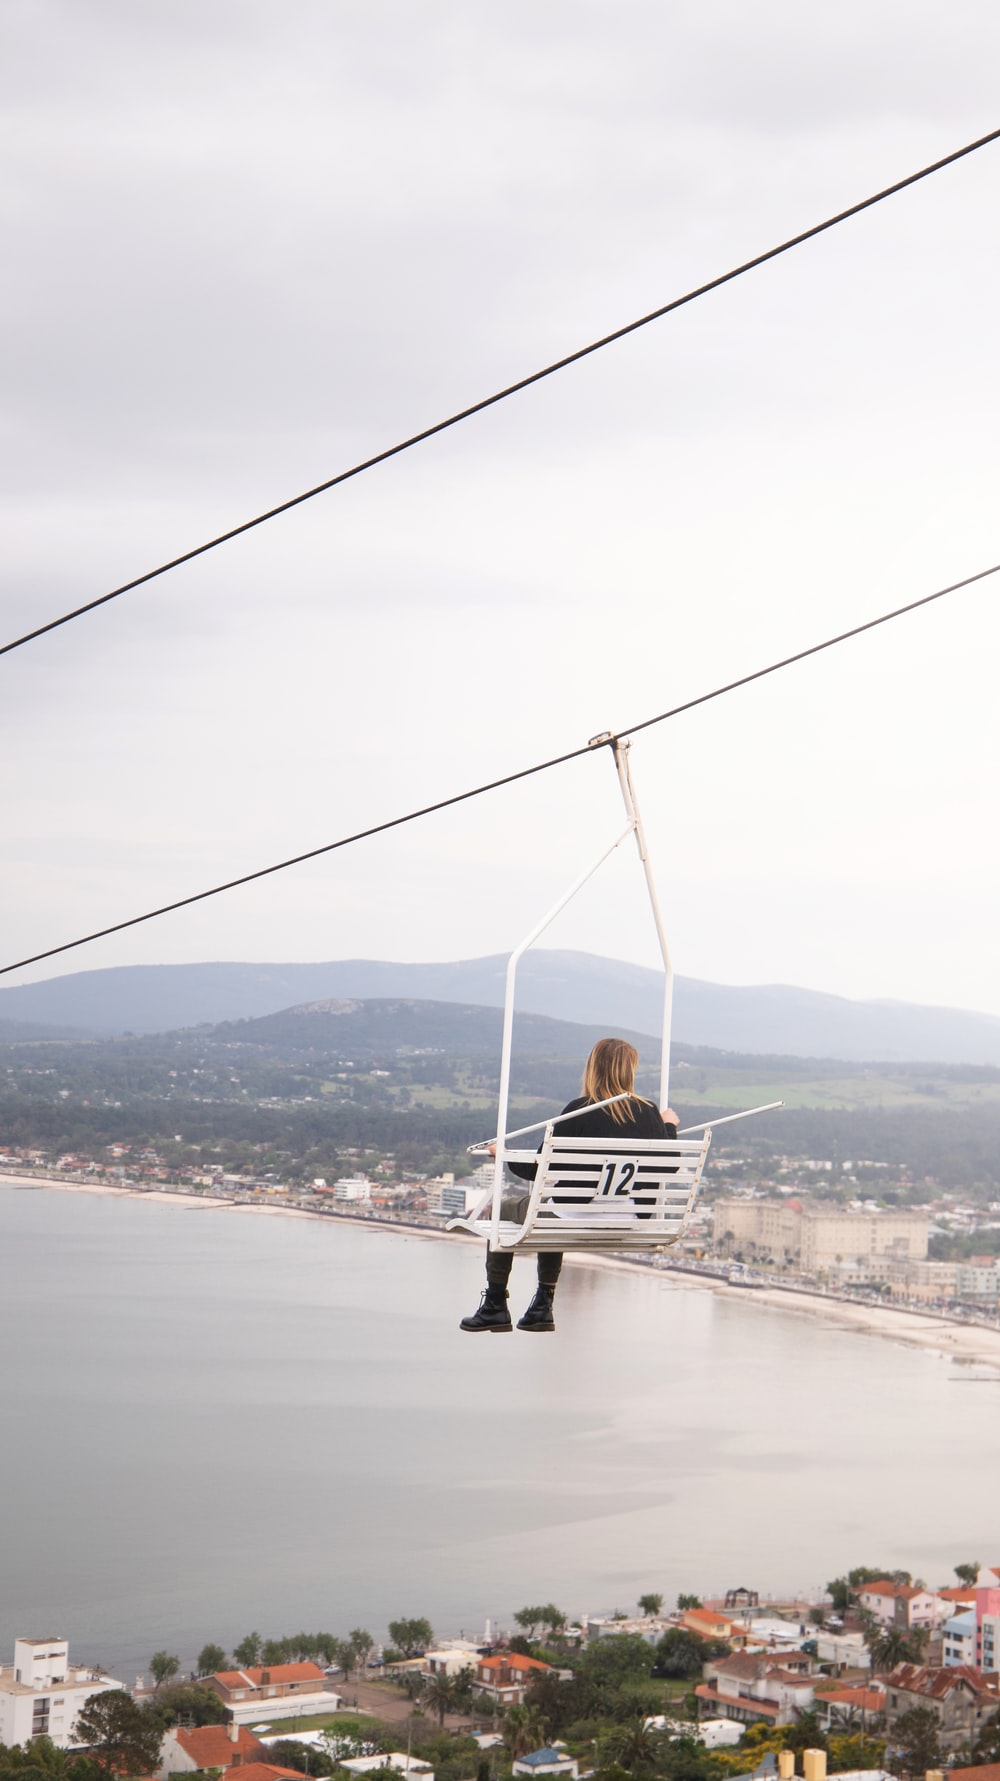 woman in black and white striped shirt sitting on white and black swing during daytime